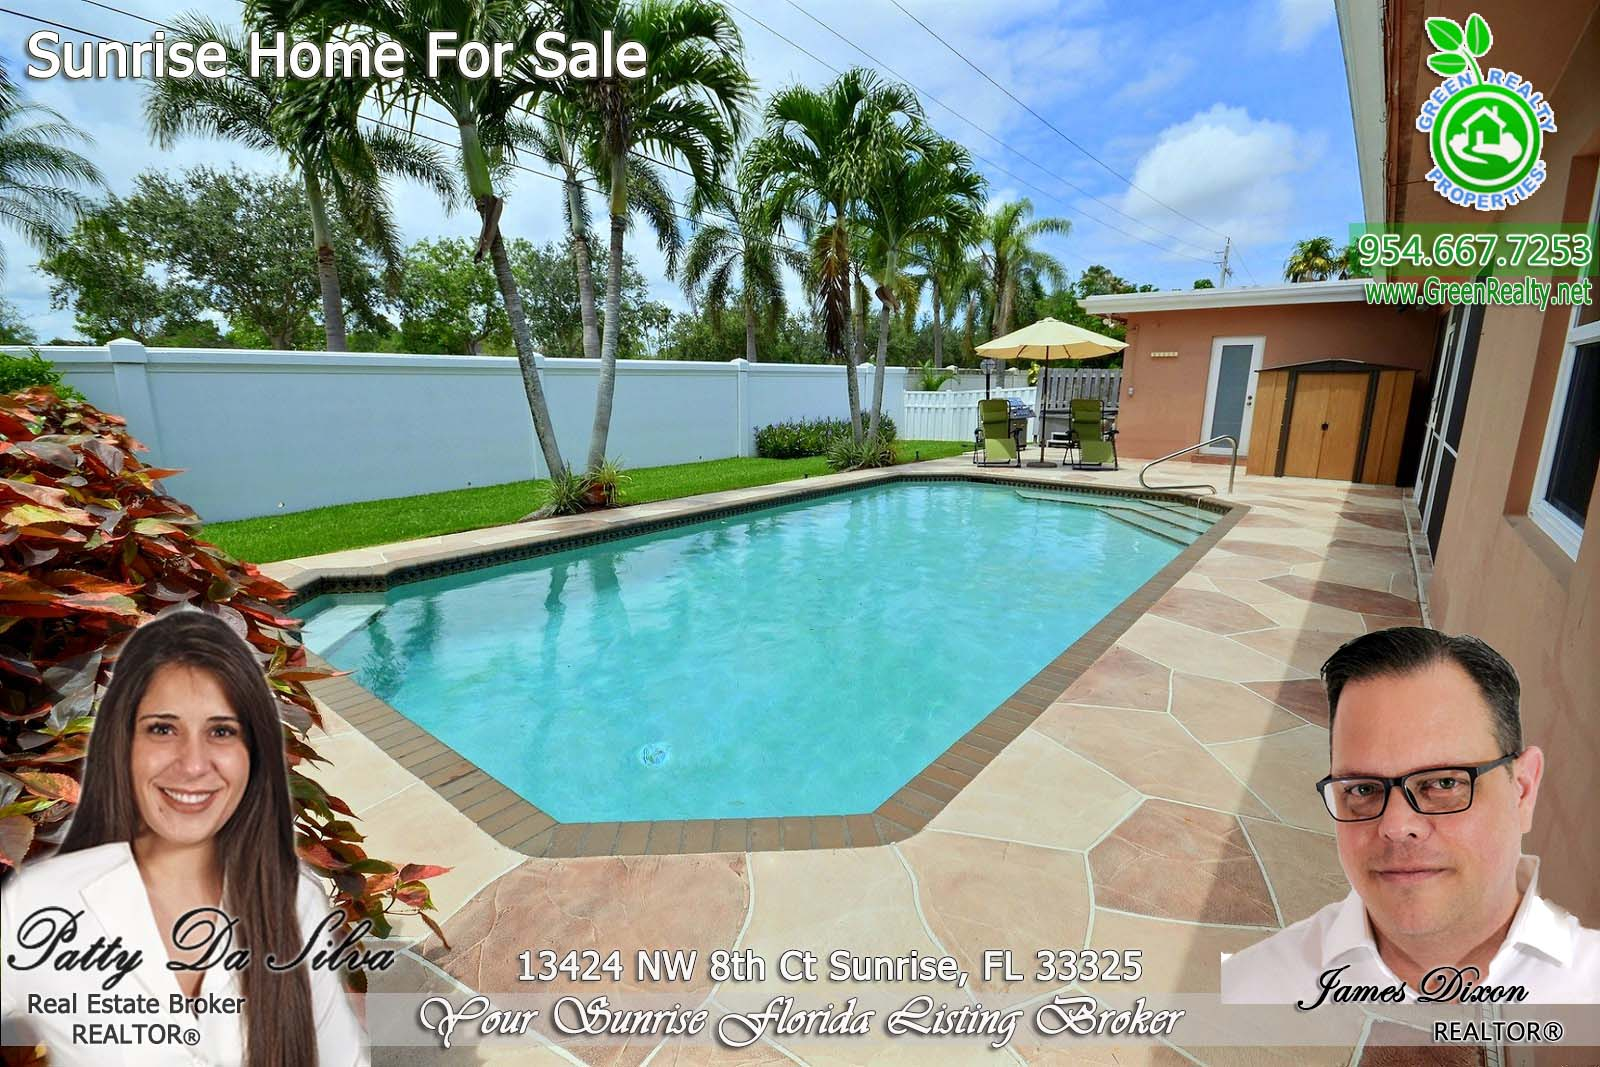 28 Sunrise Florida Homes For Sale (3)